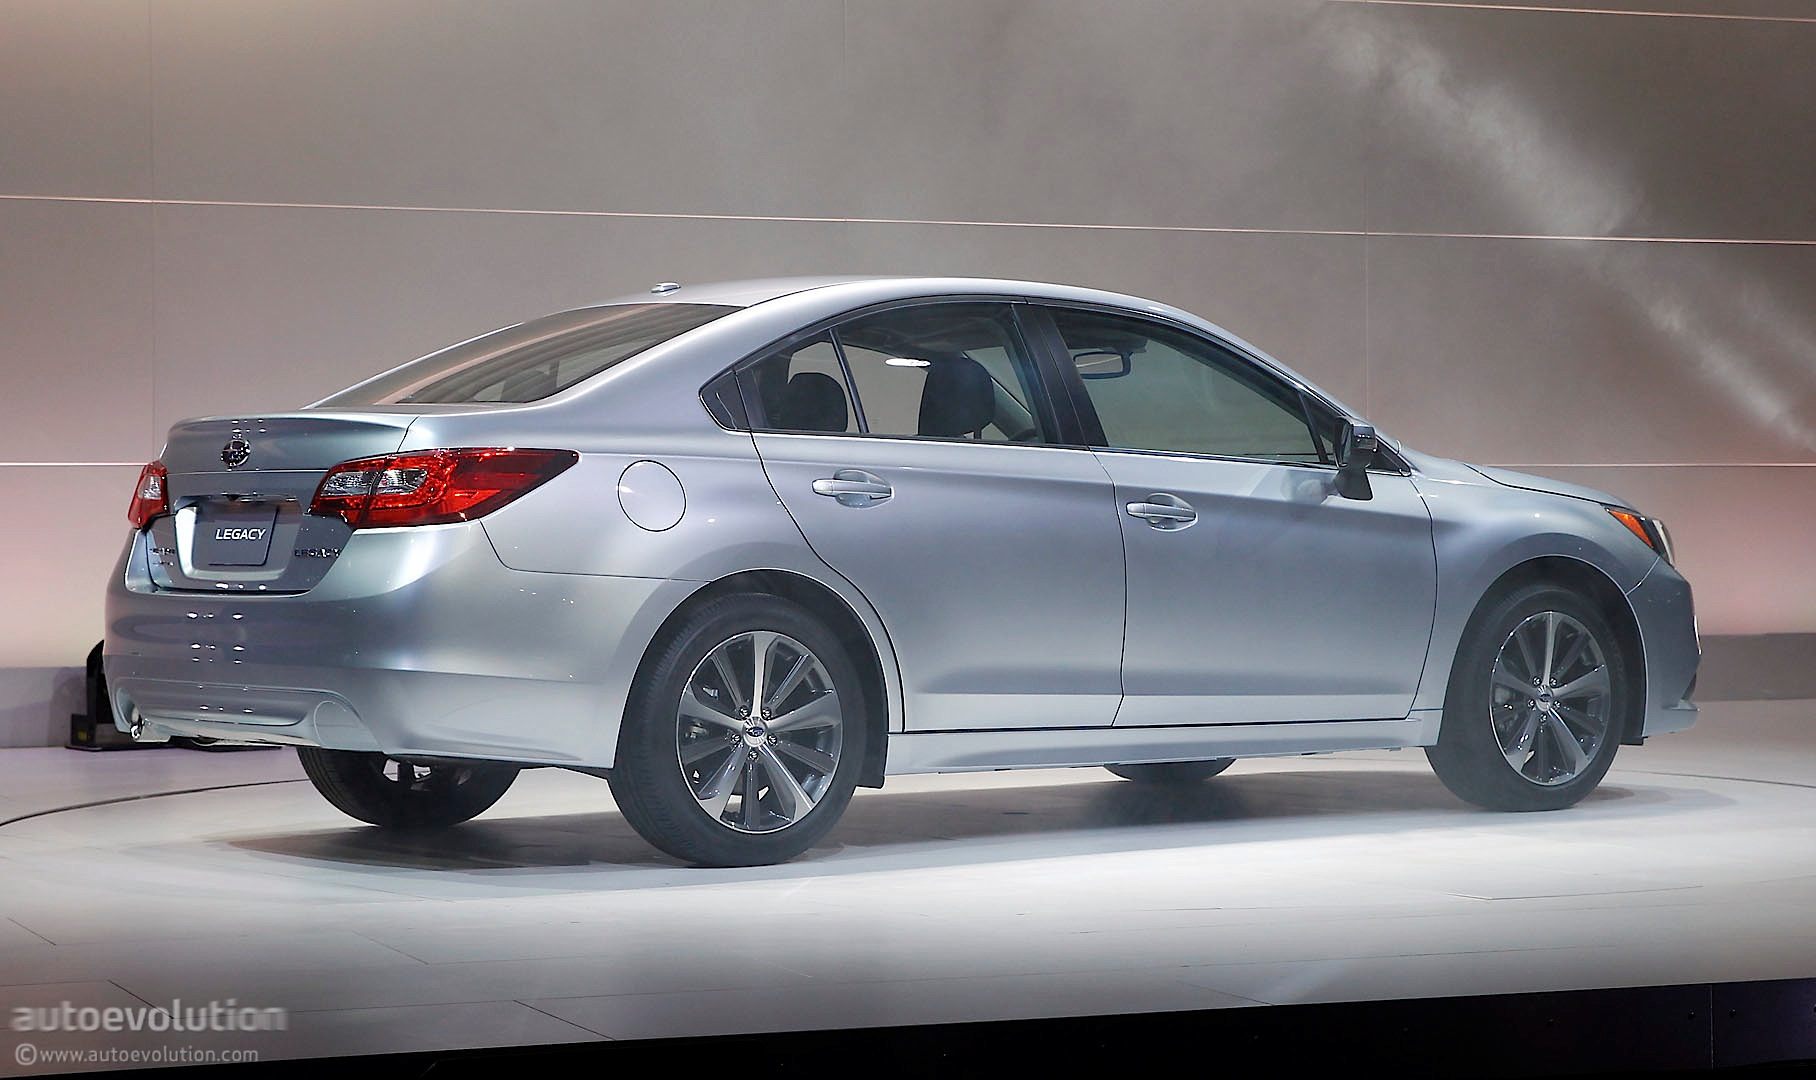 2015 Subaru Legacy Canada.html | Car Review, Specs, Price and Release